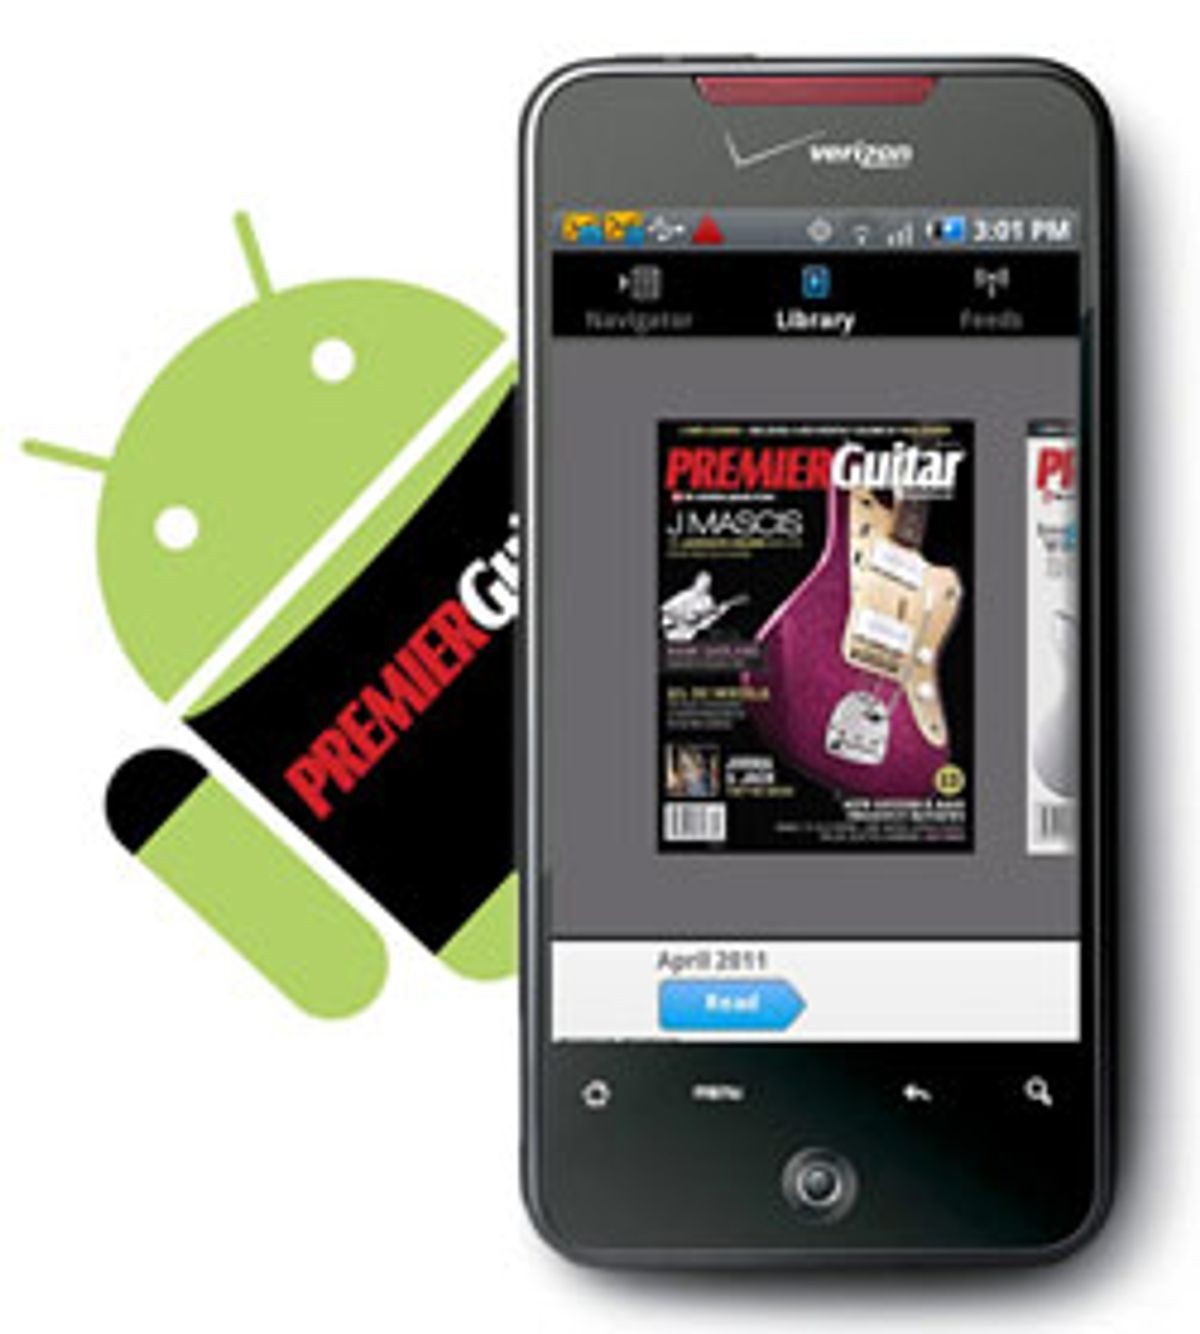 Premier Guitar Launches Free Android App